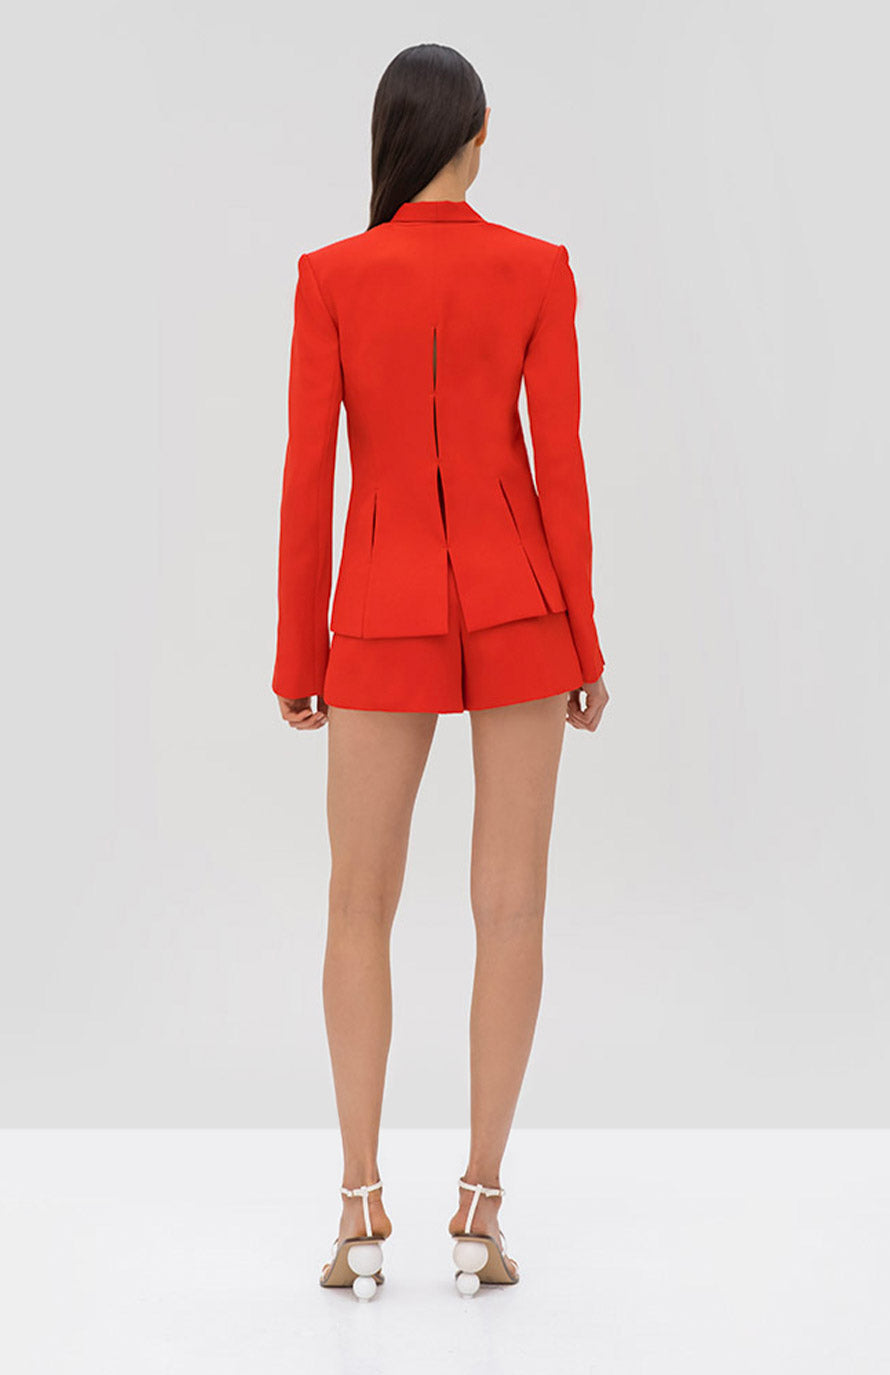 Alexis Vaska Blazer and Mikli Short Red - Rear View